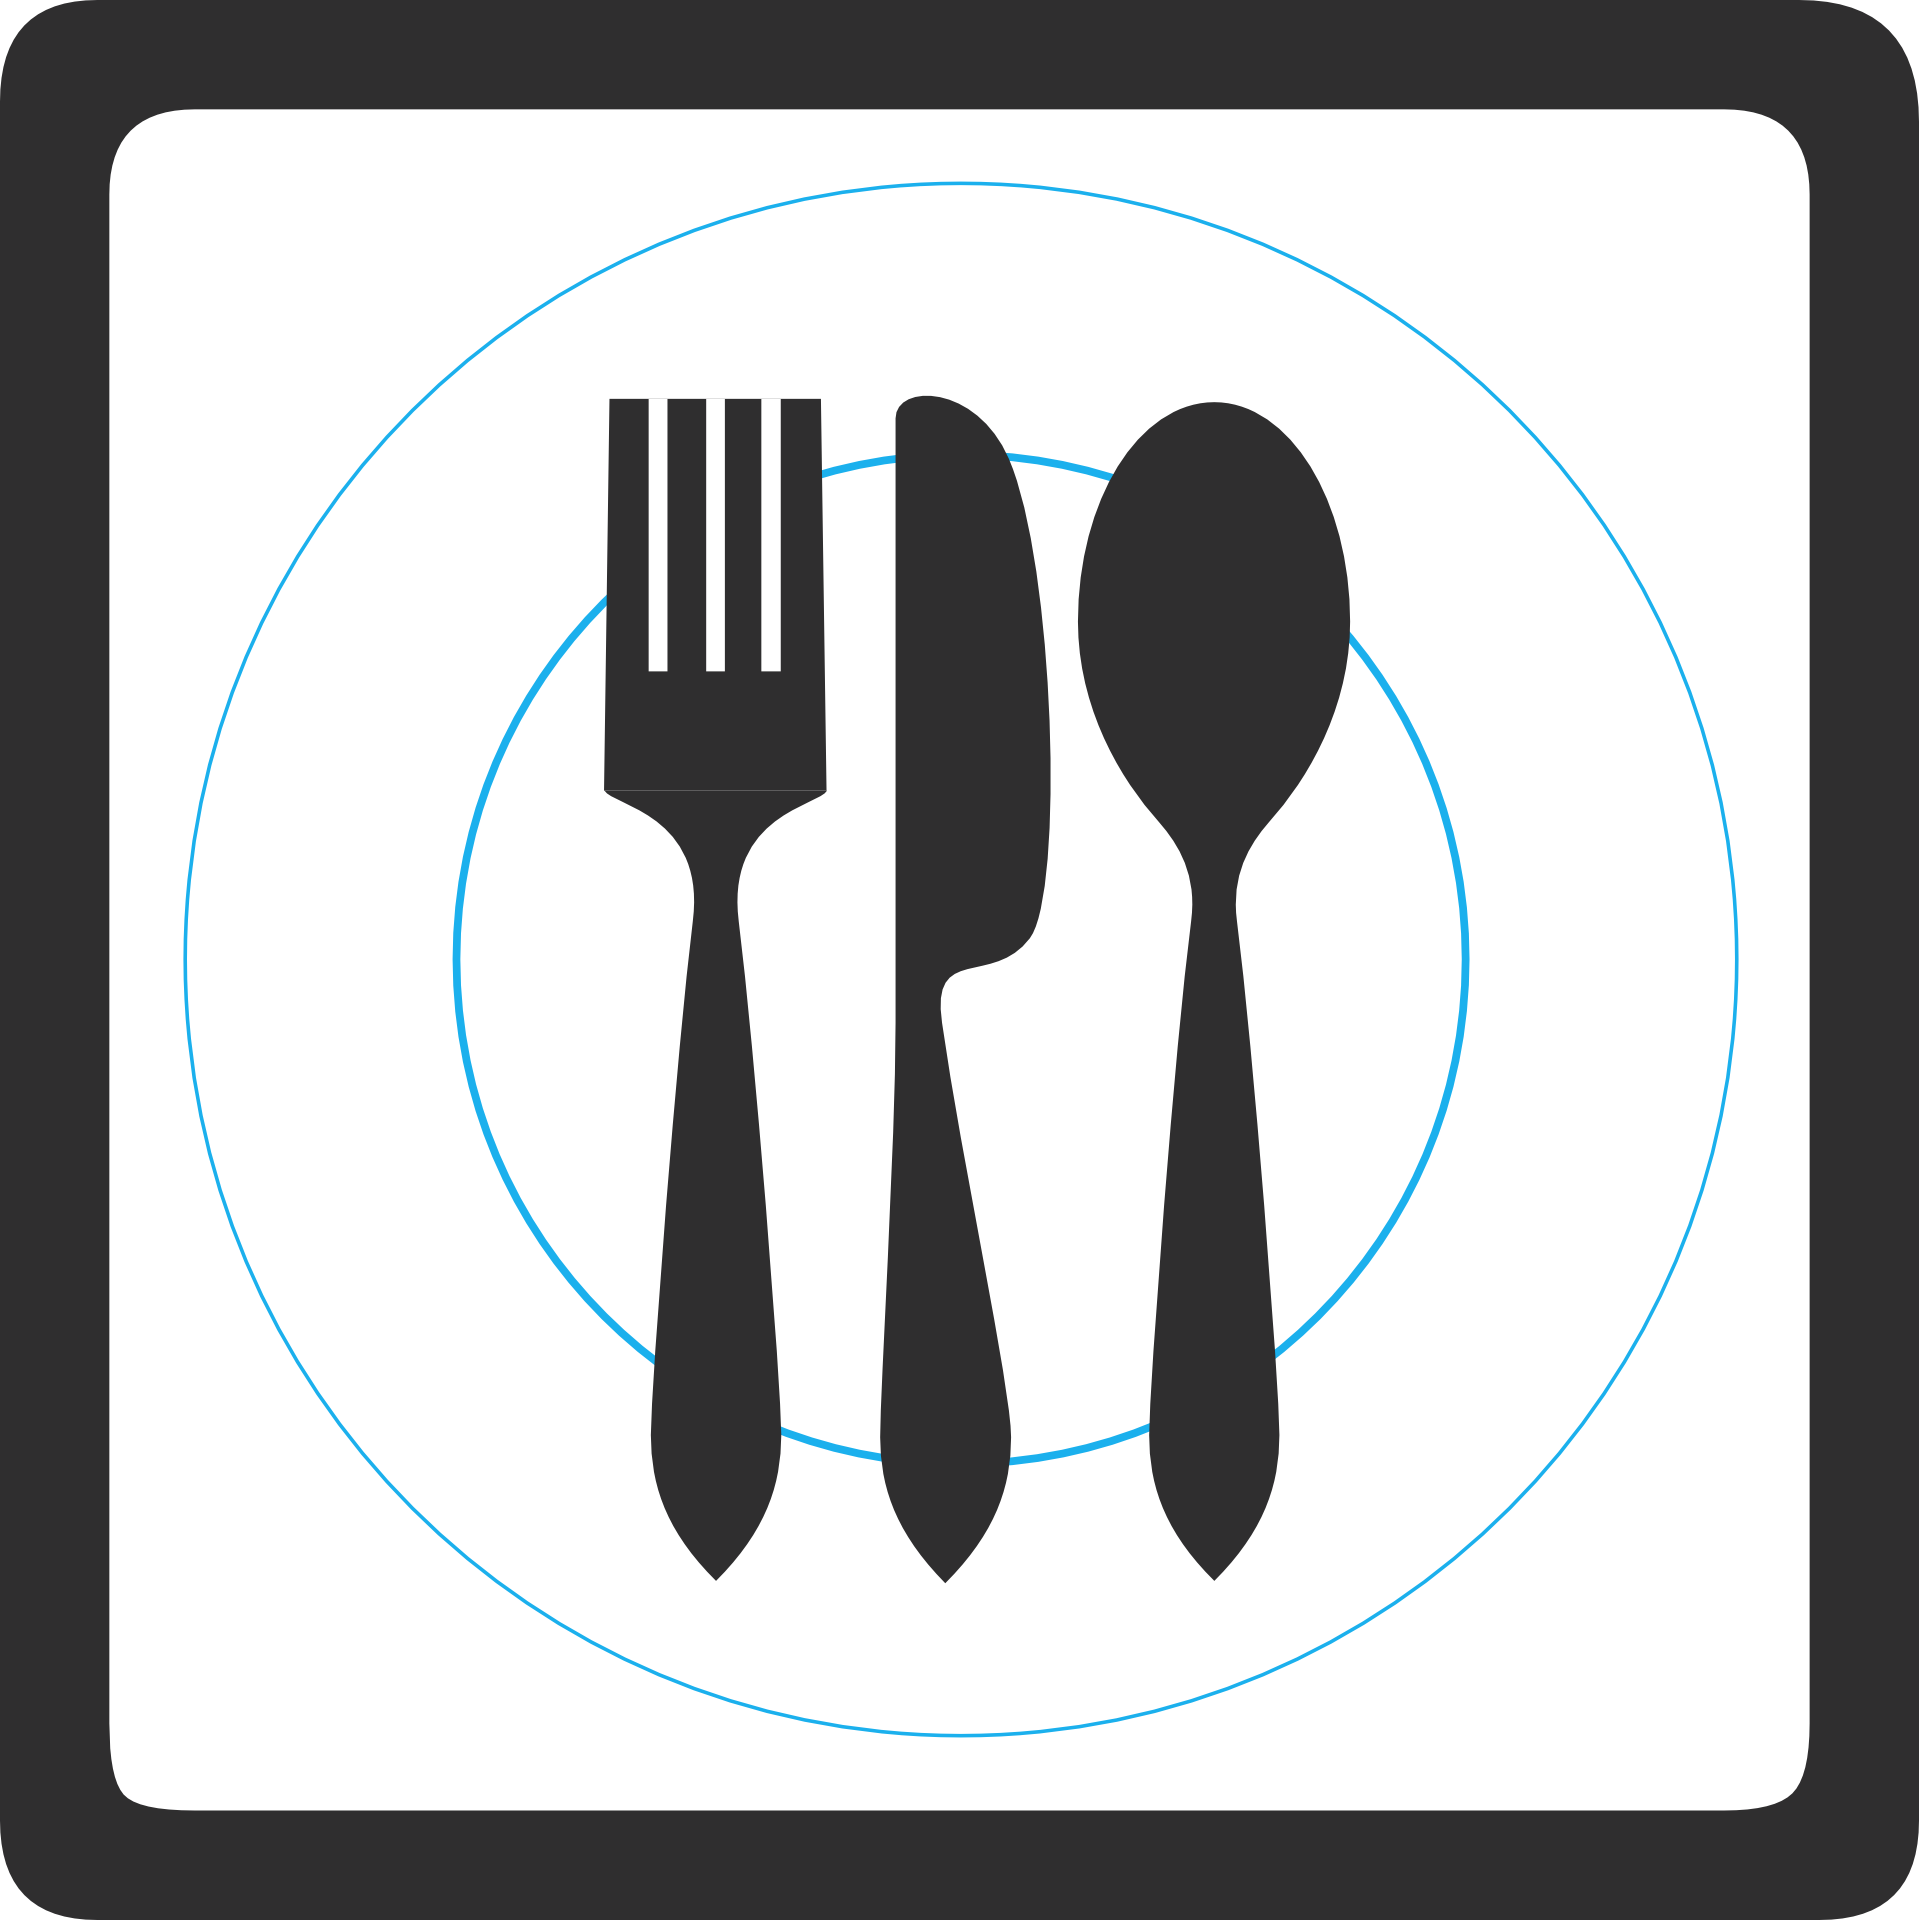 Spoon knife fork png. Plate clip art transprent